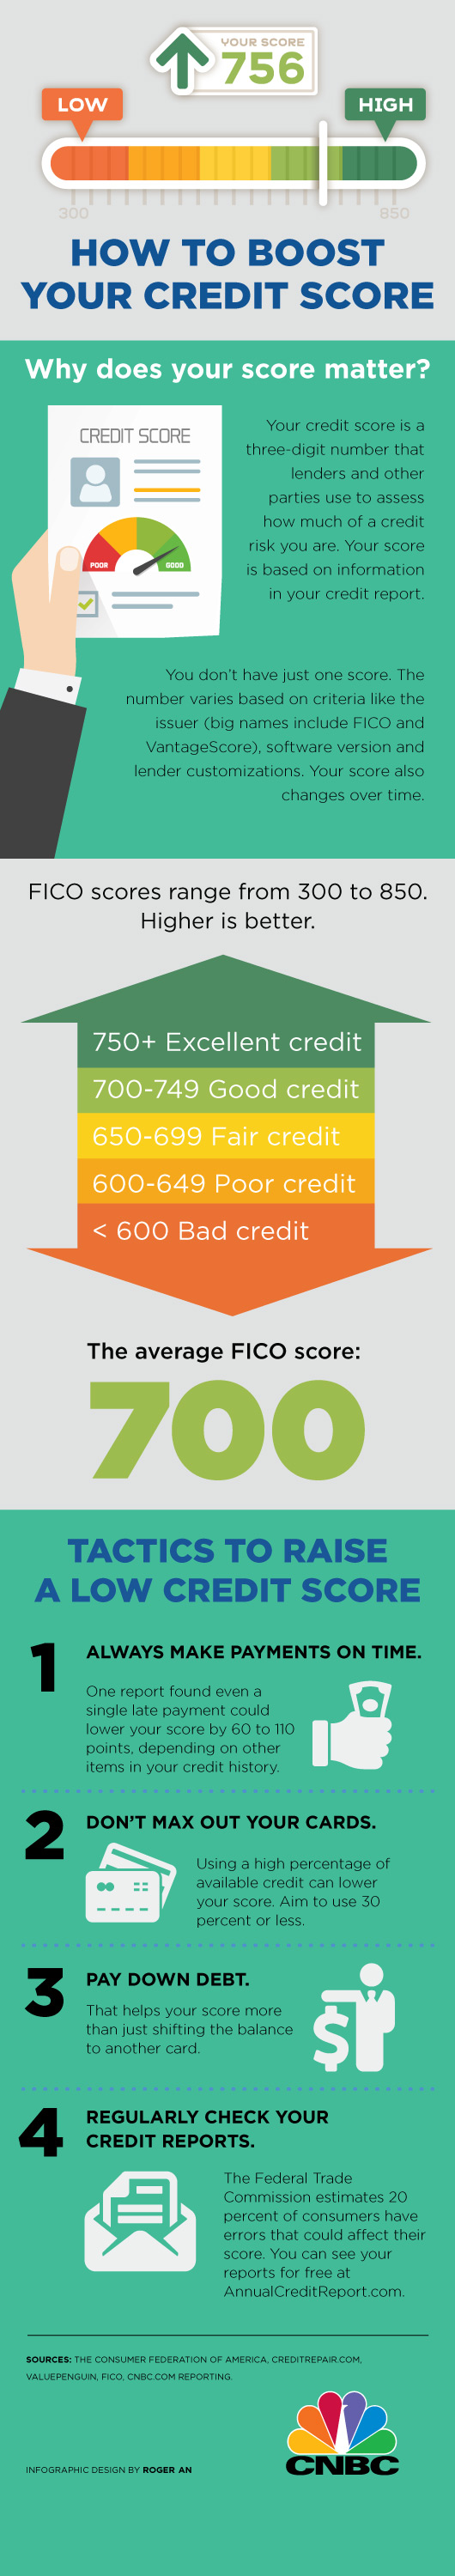 Credit Score boost infographic duard ventures